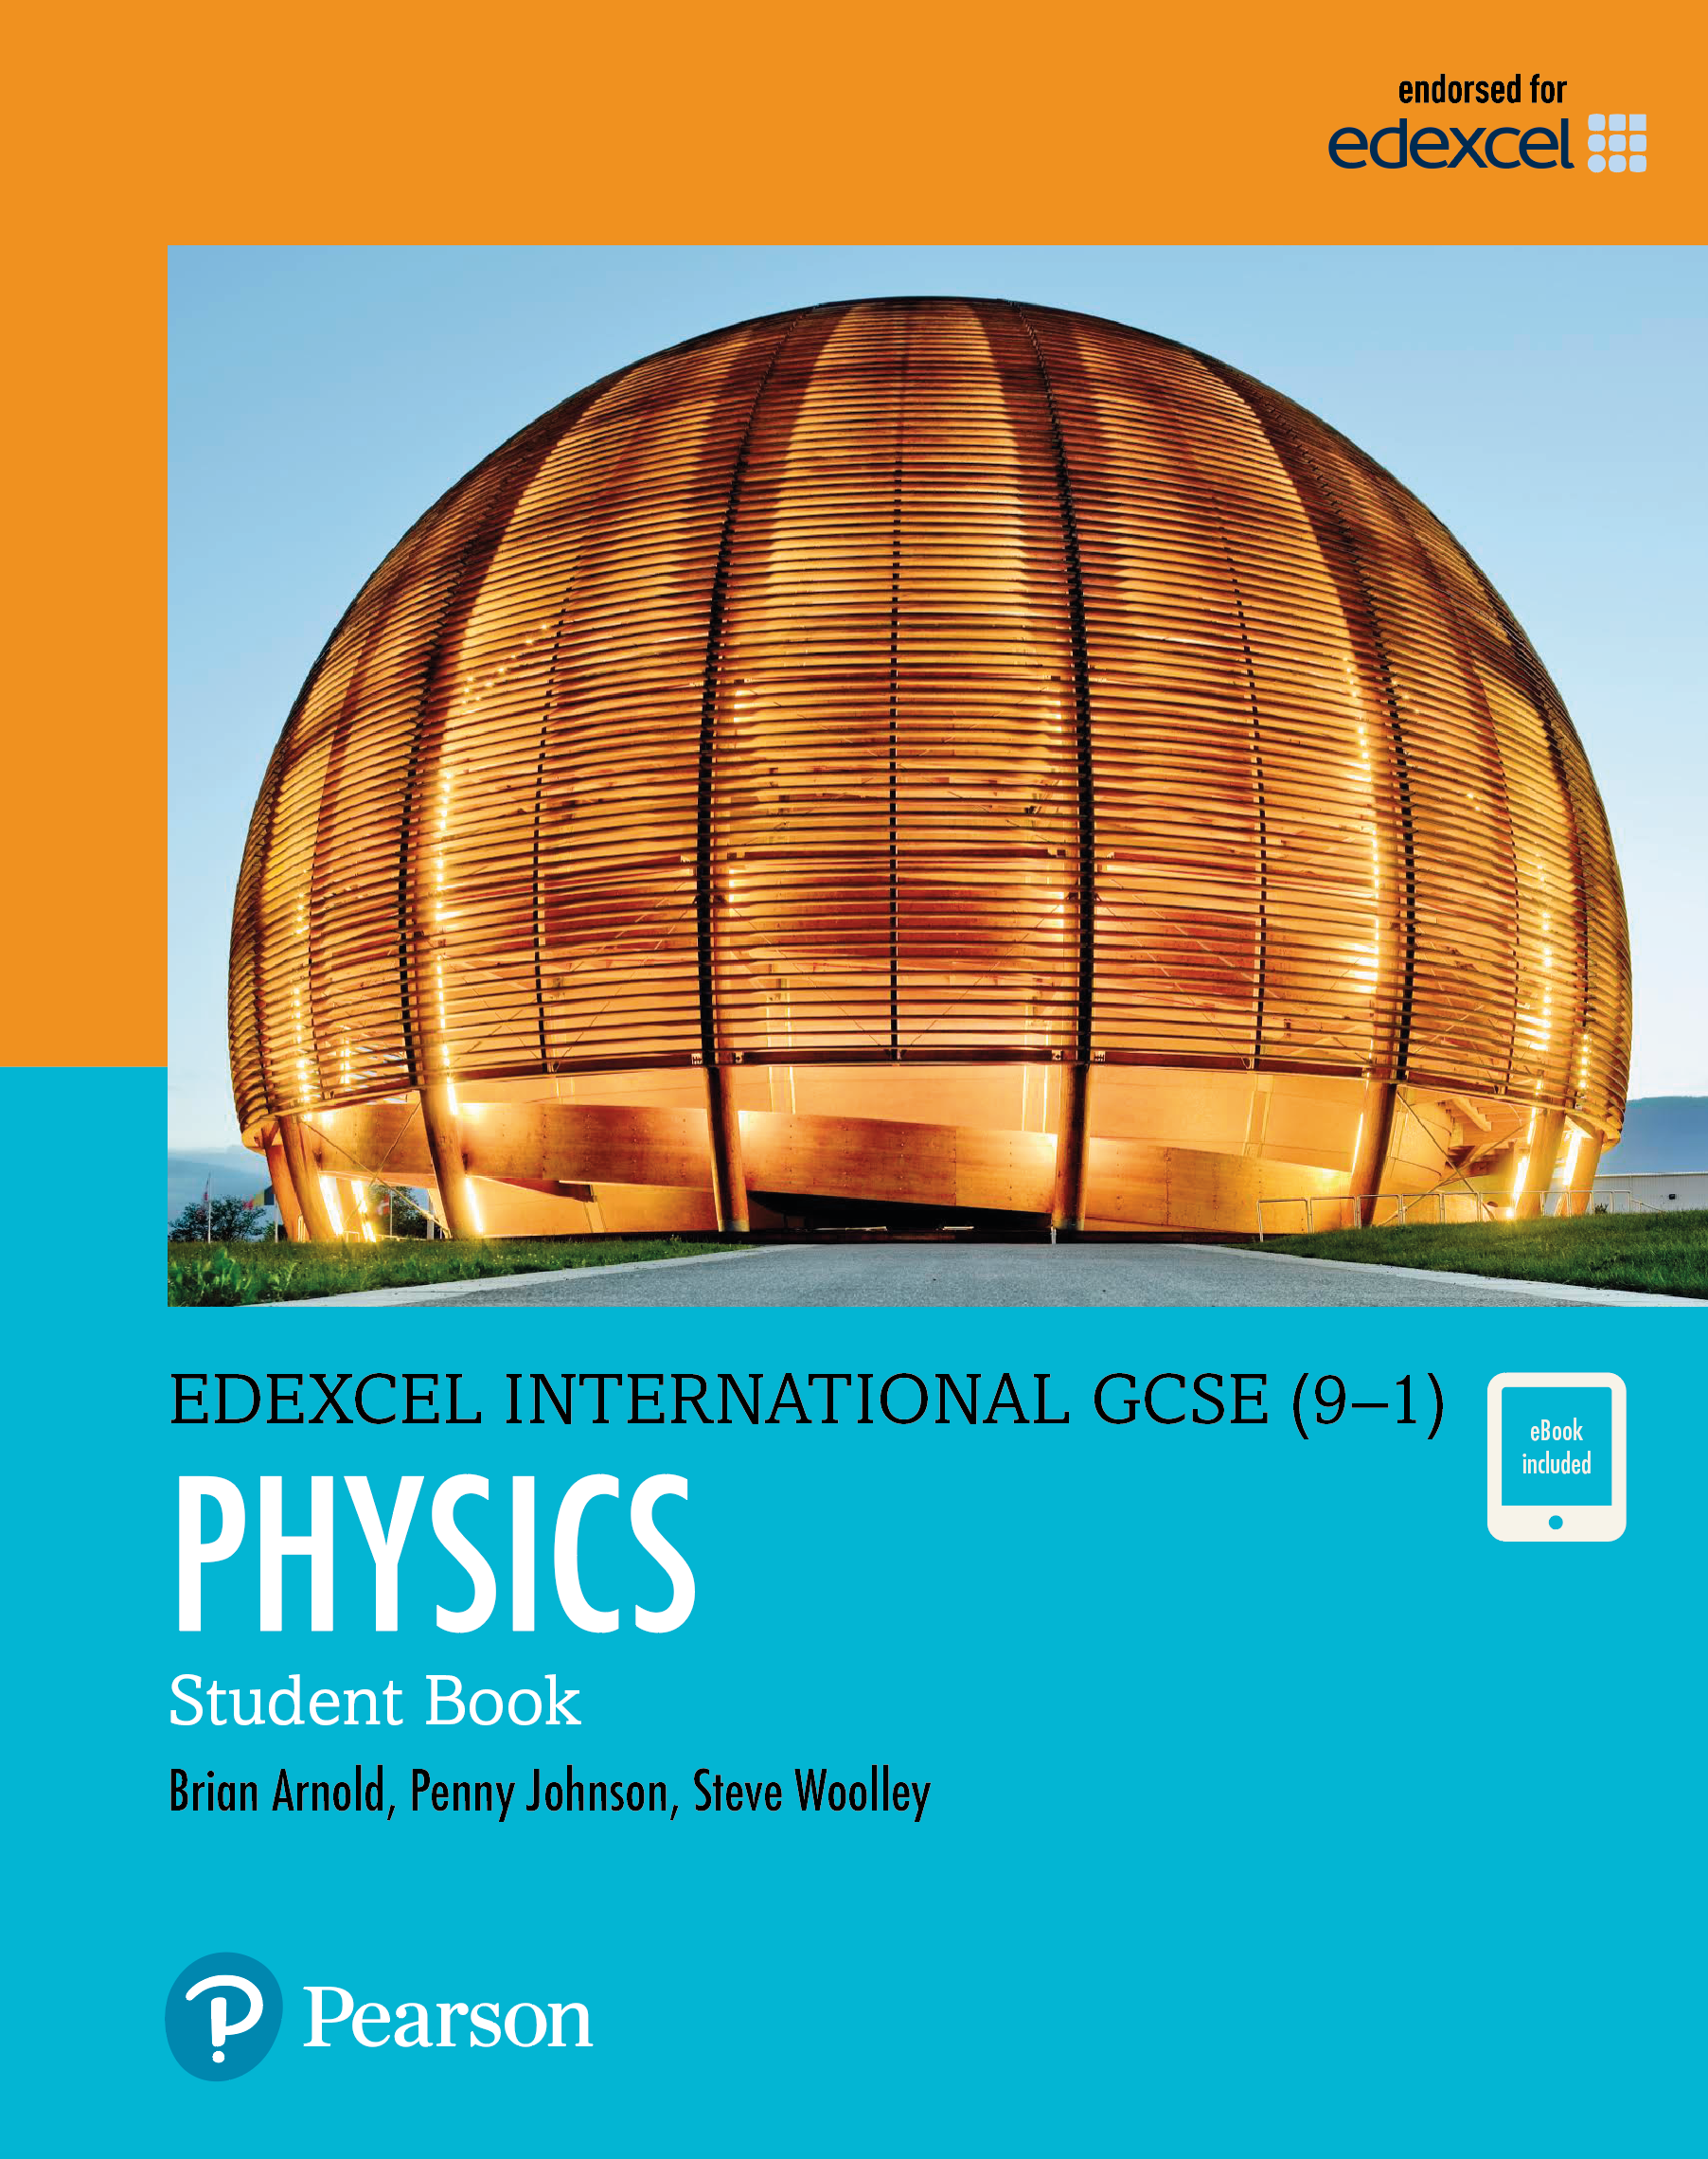 Physics Student Book sample